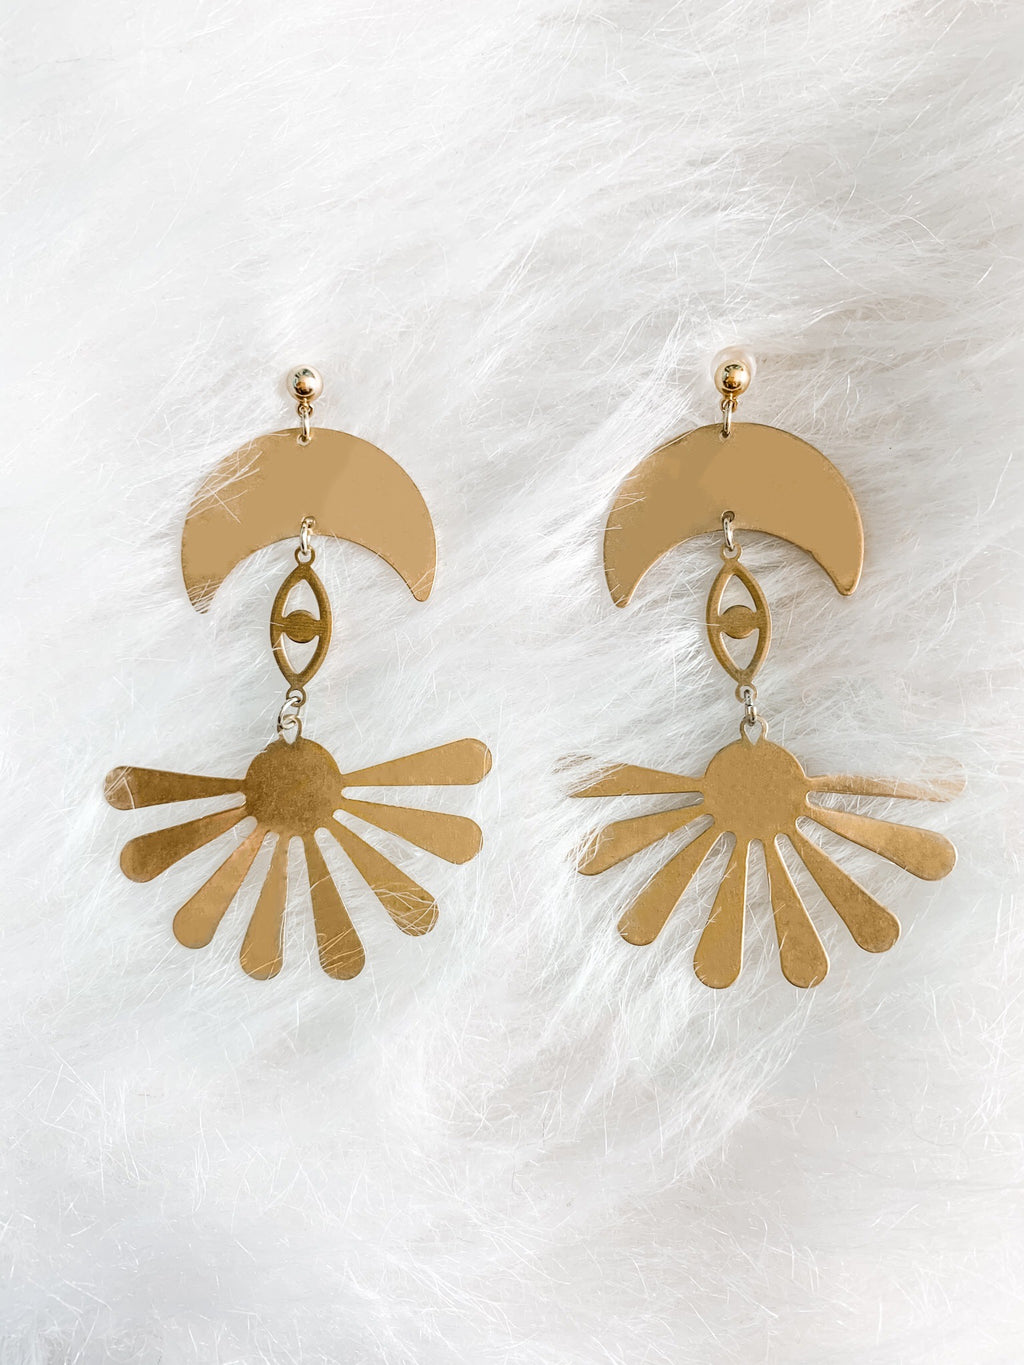 Moondazed Earrings - The Pretty Eclectic